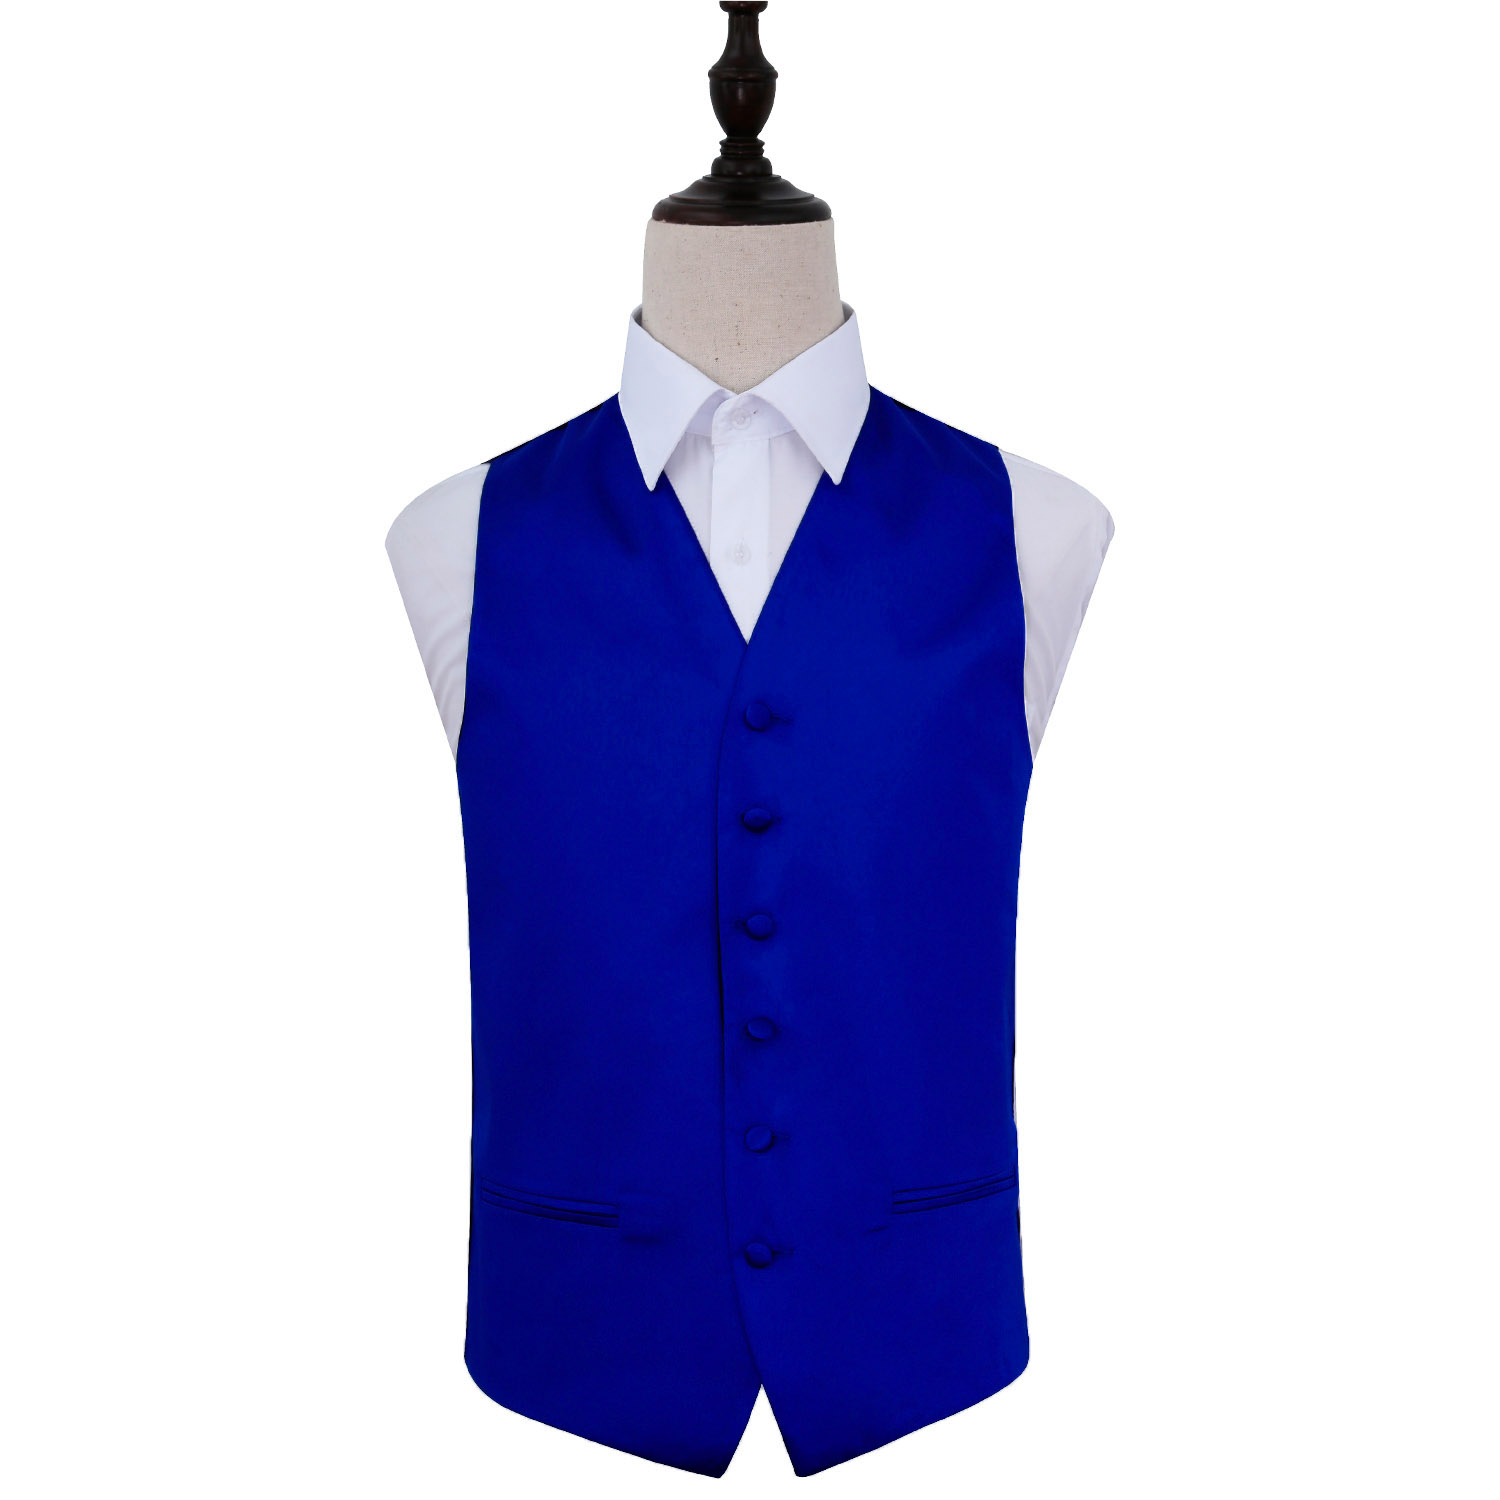 Men's suits Waistcoats Blue Occasionwear - Next Brazil. International Shipping And Returns Available. Buy Now!